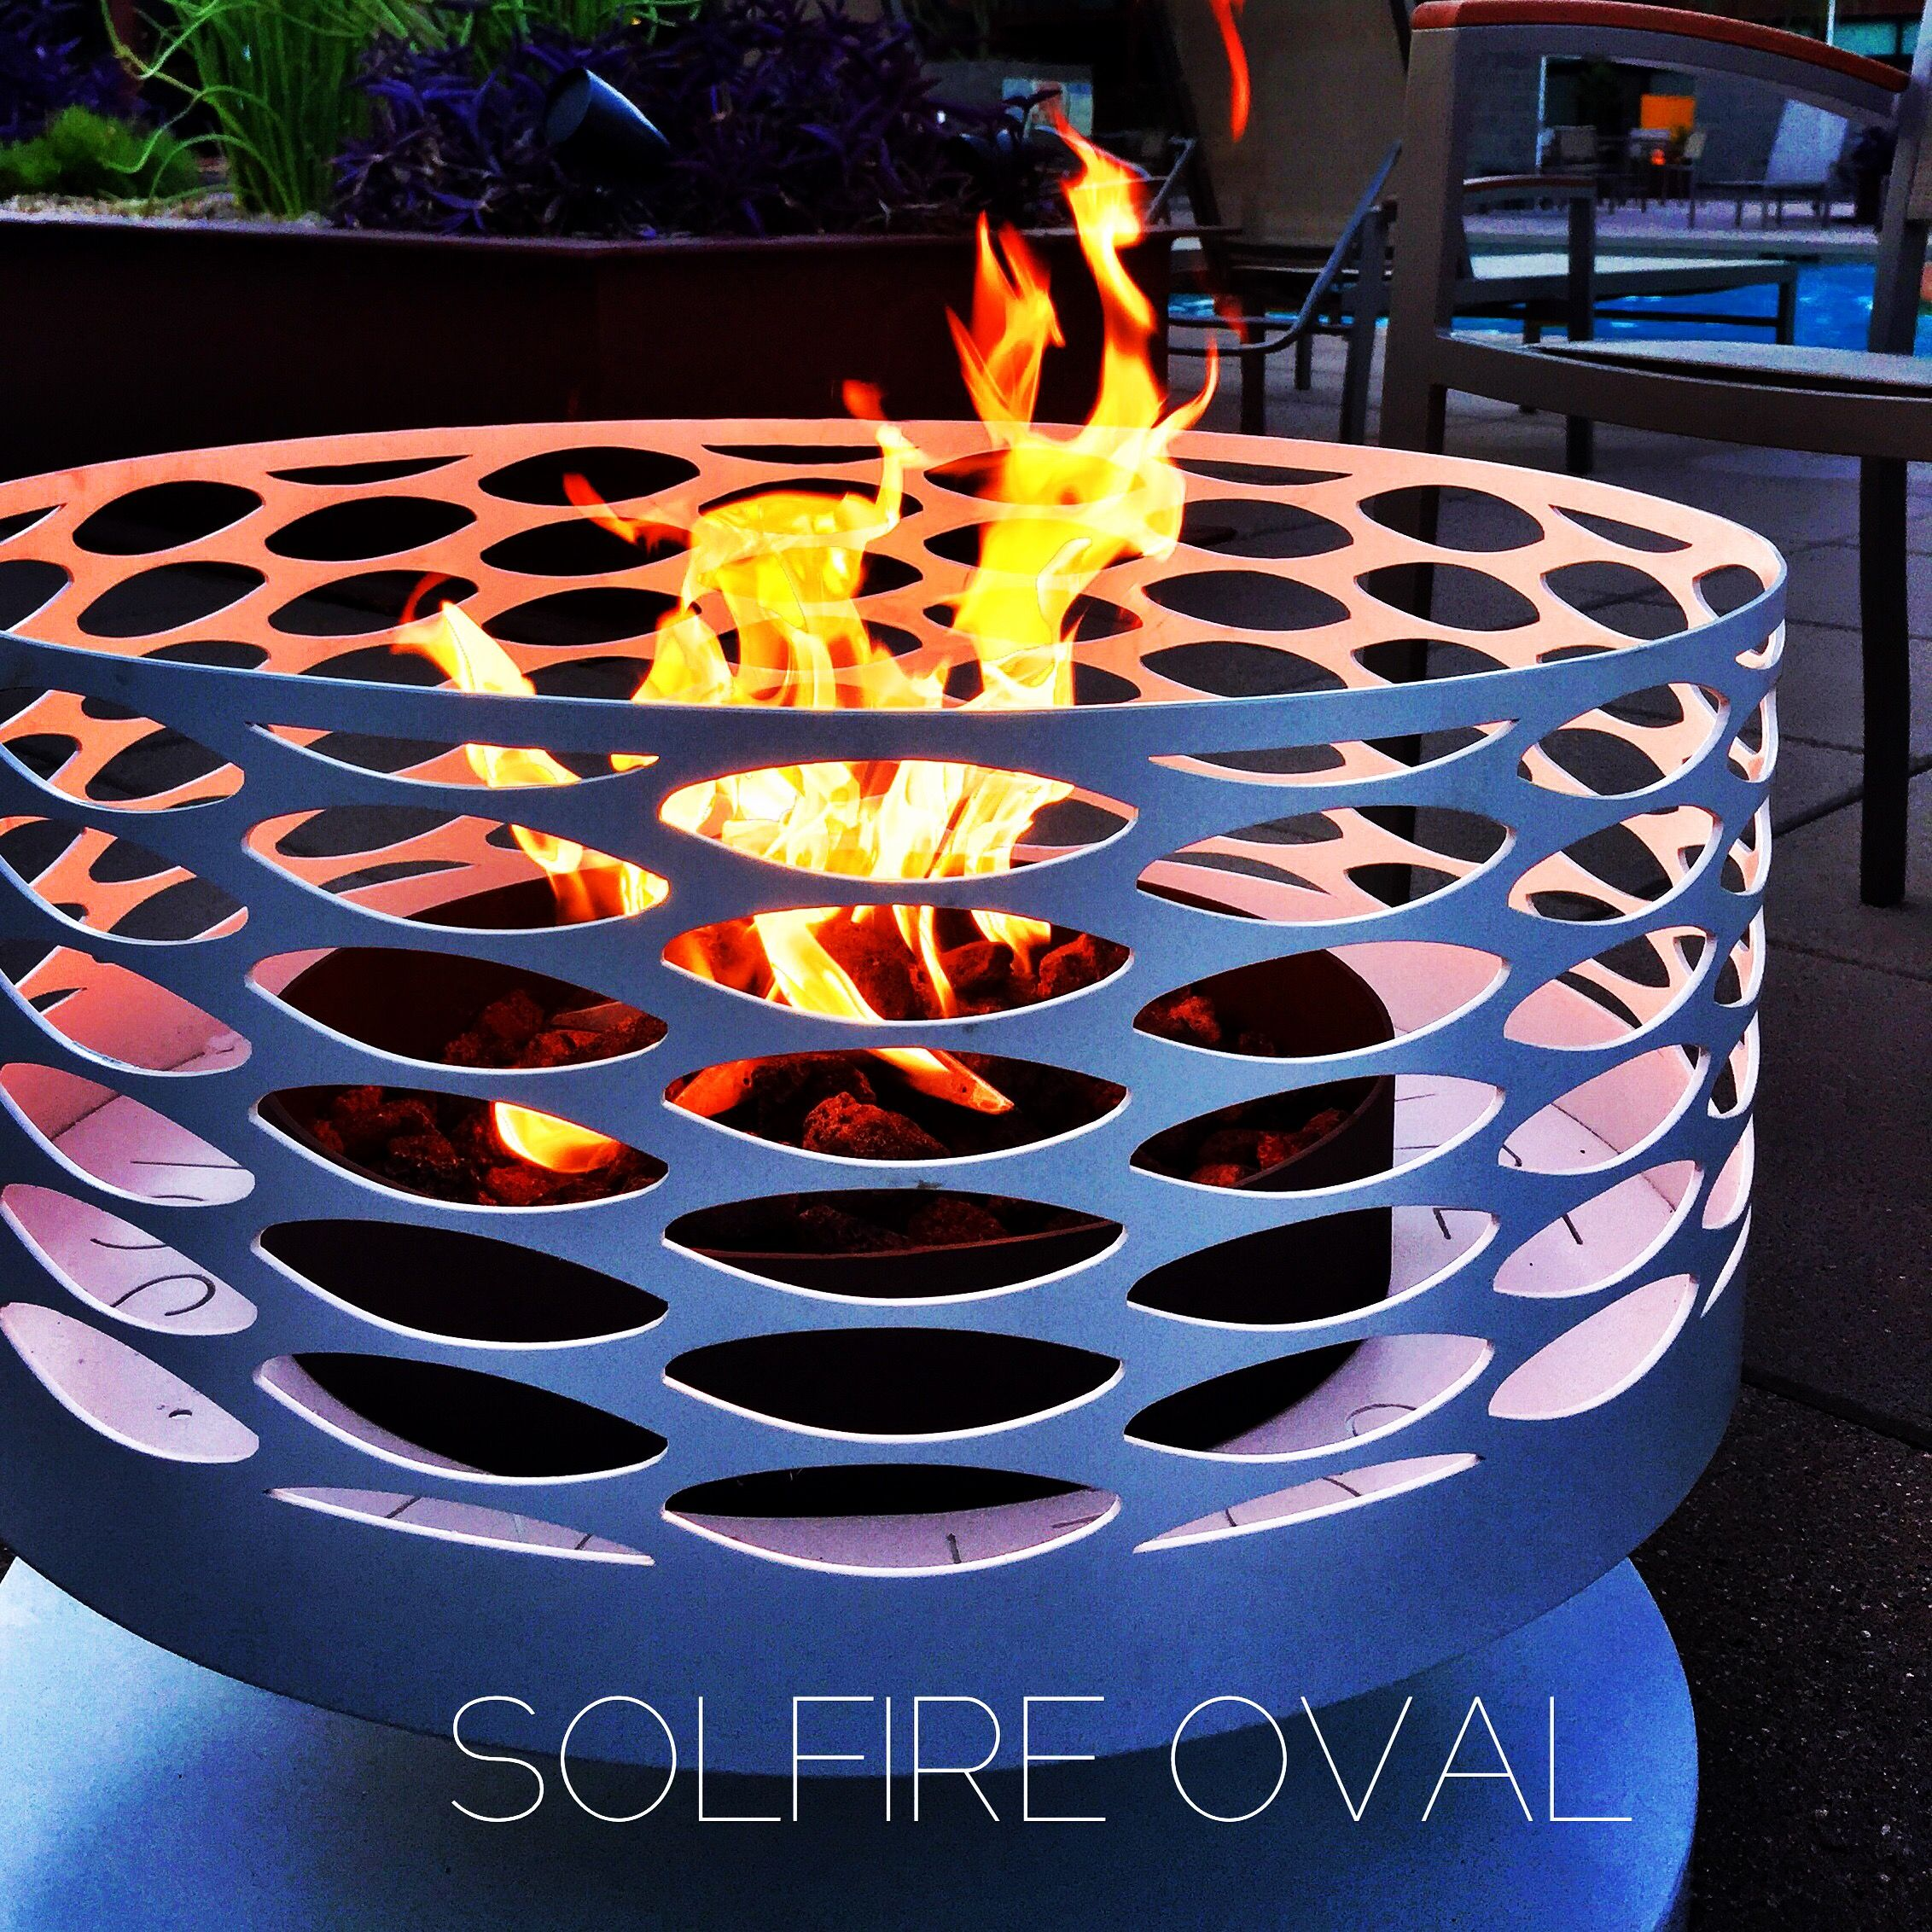 """Marne gave me a cool shirt with the phrase """"I do it for the love""""across the chest. So fitting, every time I ignite one of these fireplaces, I fall in love all over again. Our beautiful, new, Solfire Oval is available by special order. 1050.00 modfire.com #modfire"""